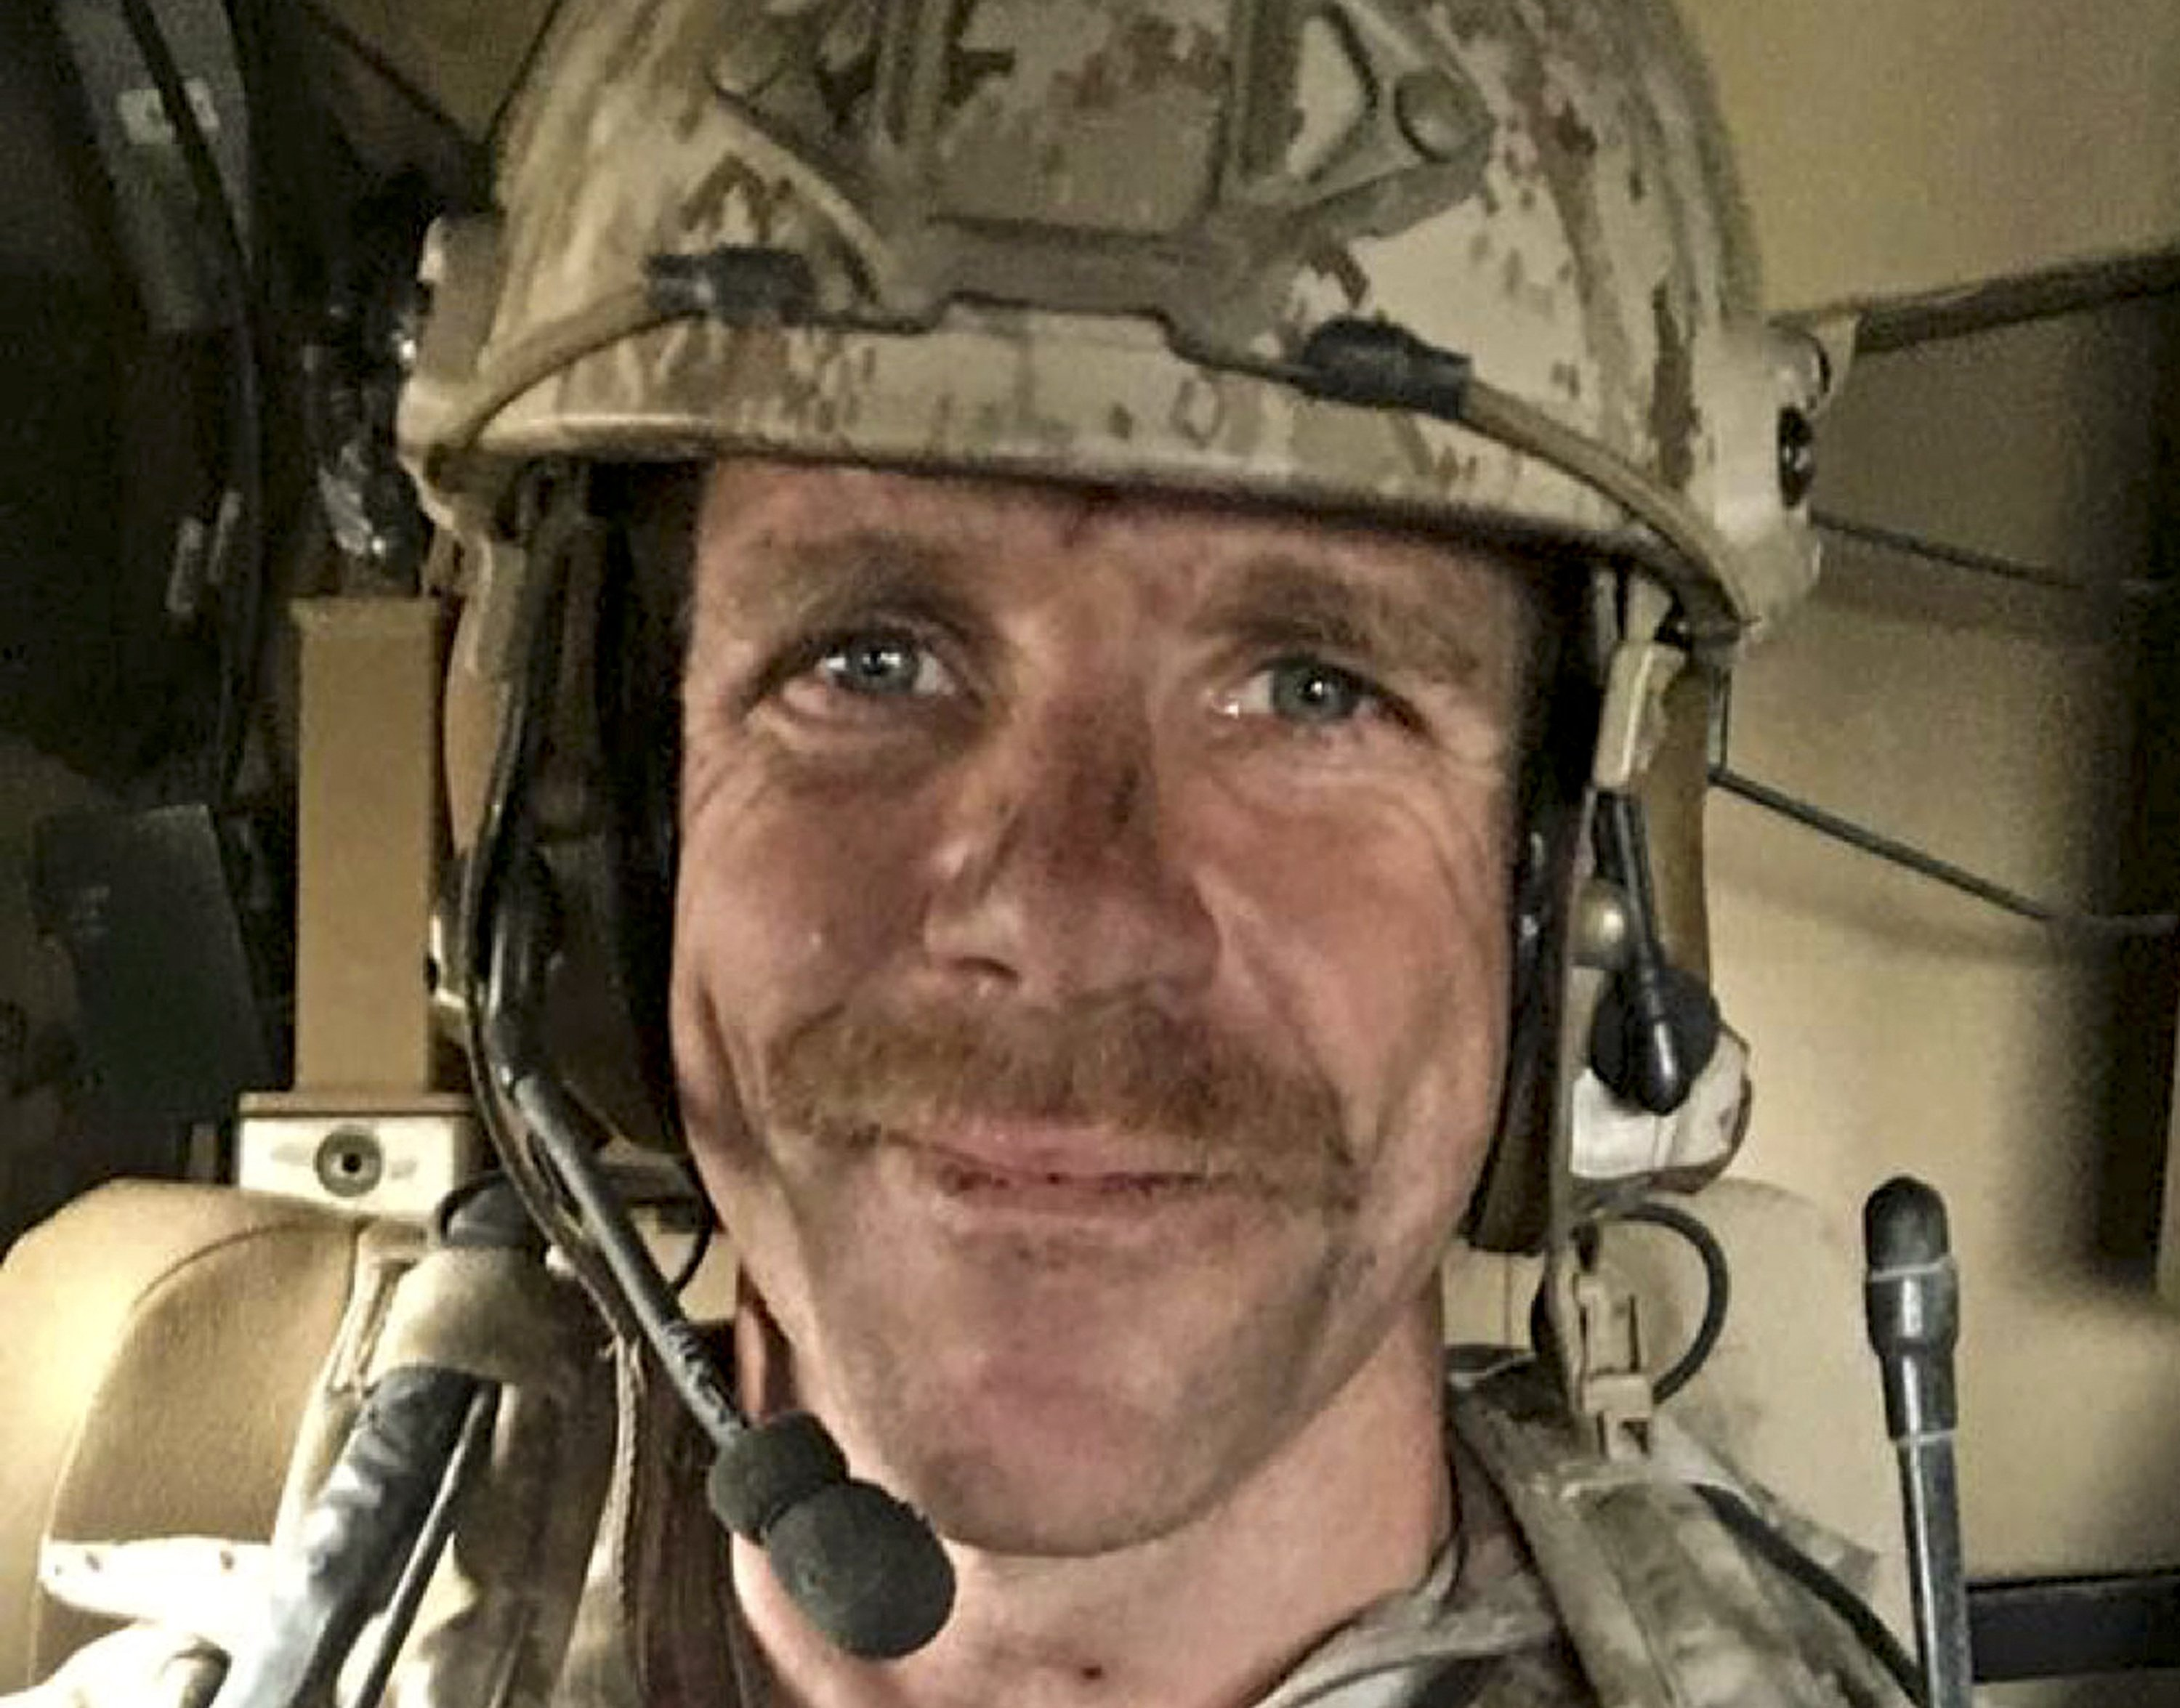 Navy SEAL trial exposes divide in normally secretive force